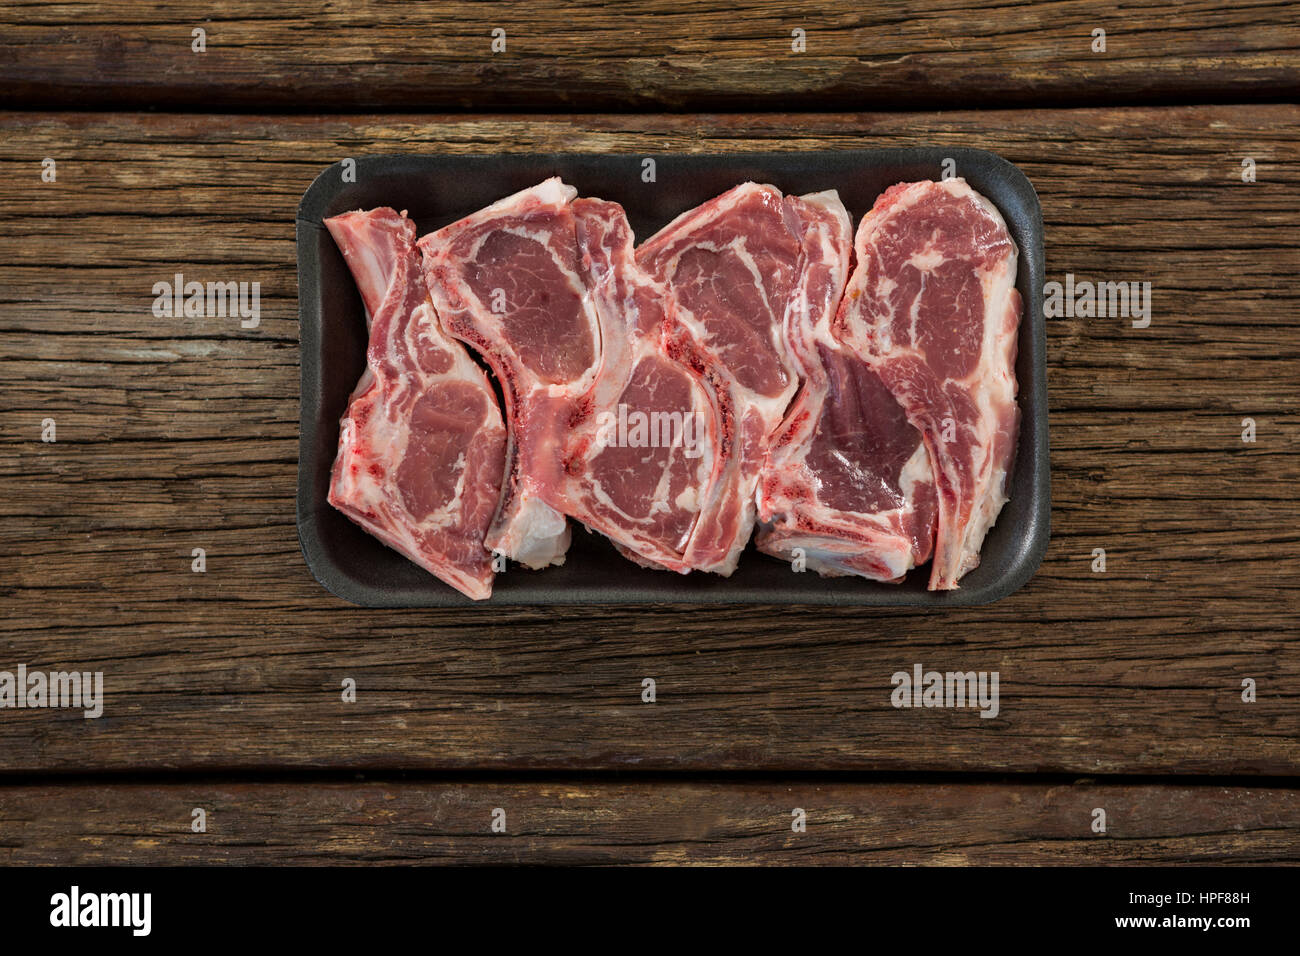 Raw Sirloin chop in black box against wooden background - Stock Image